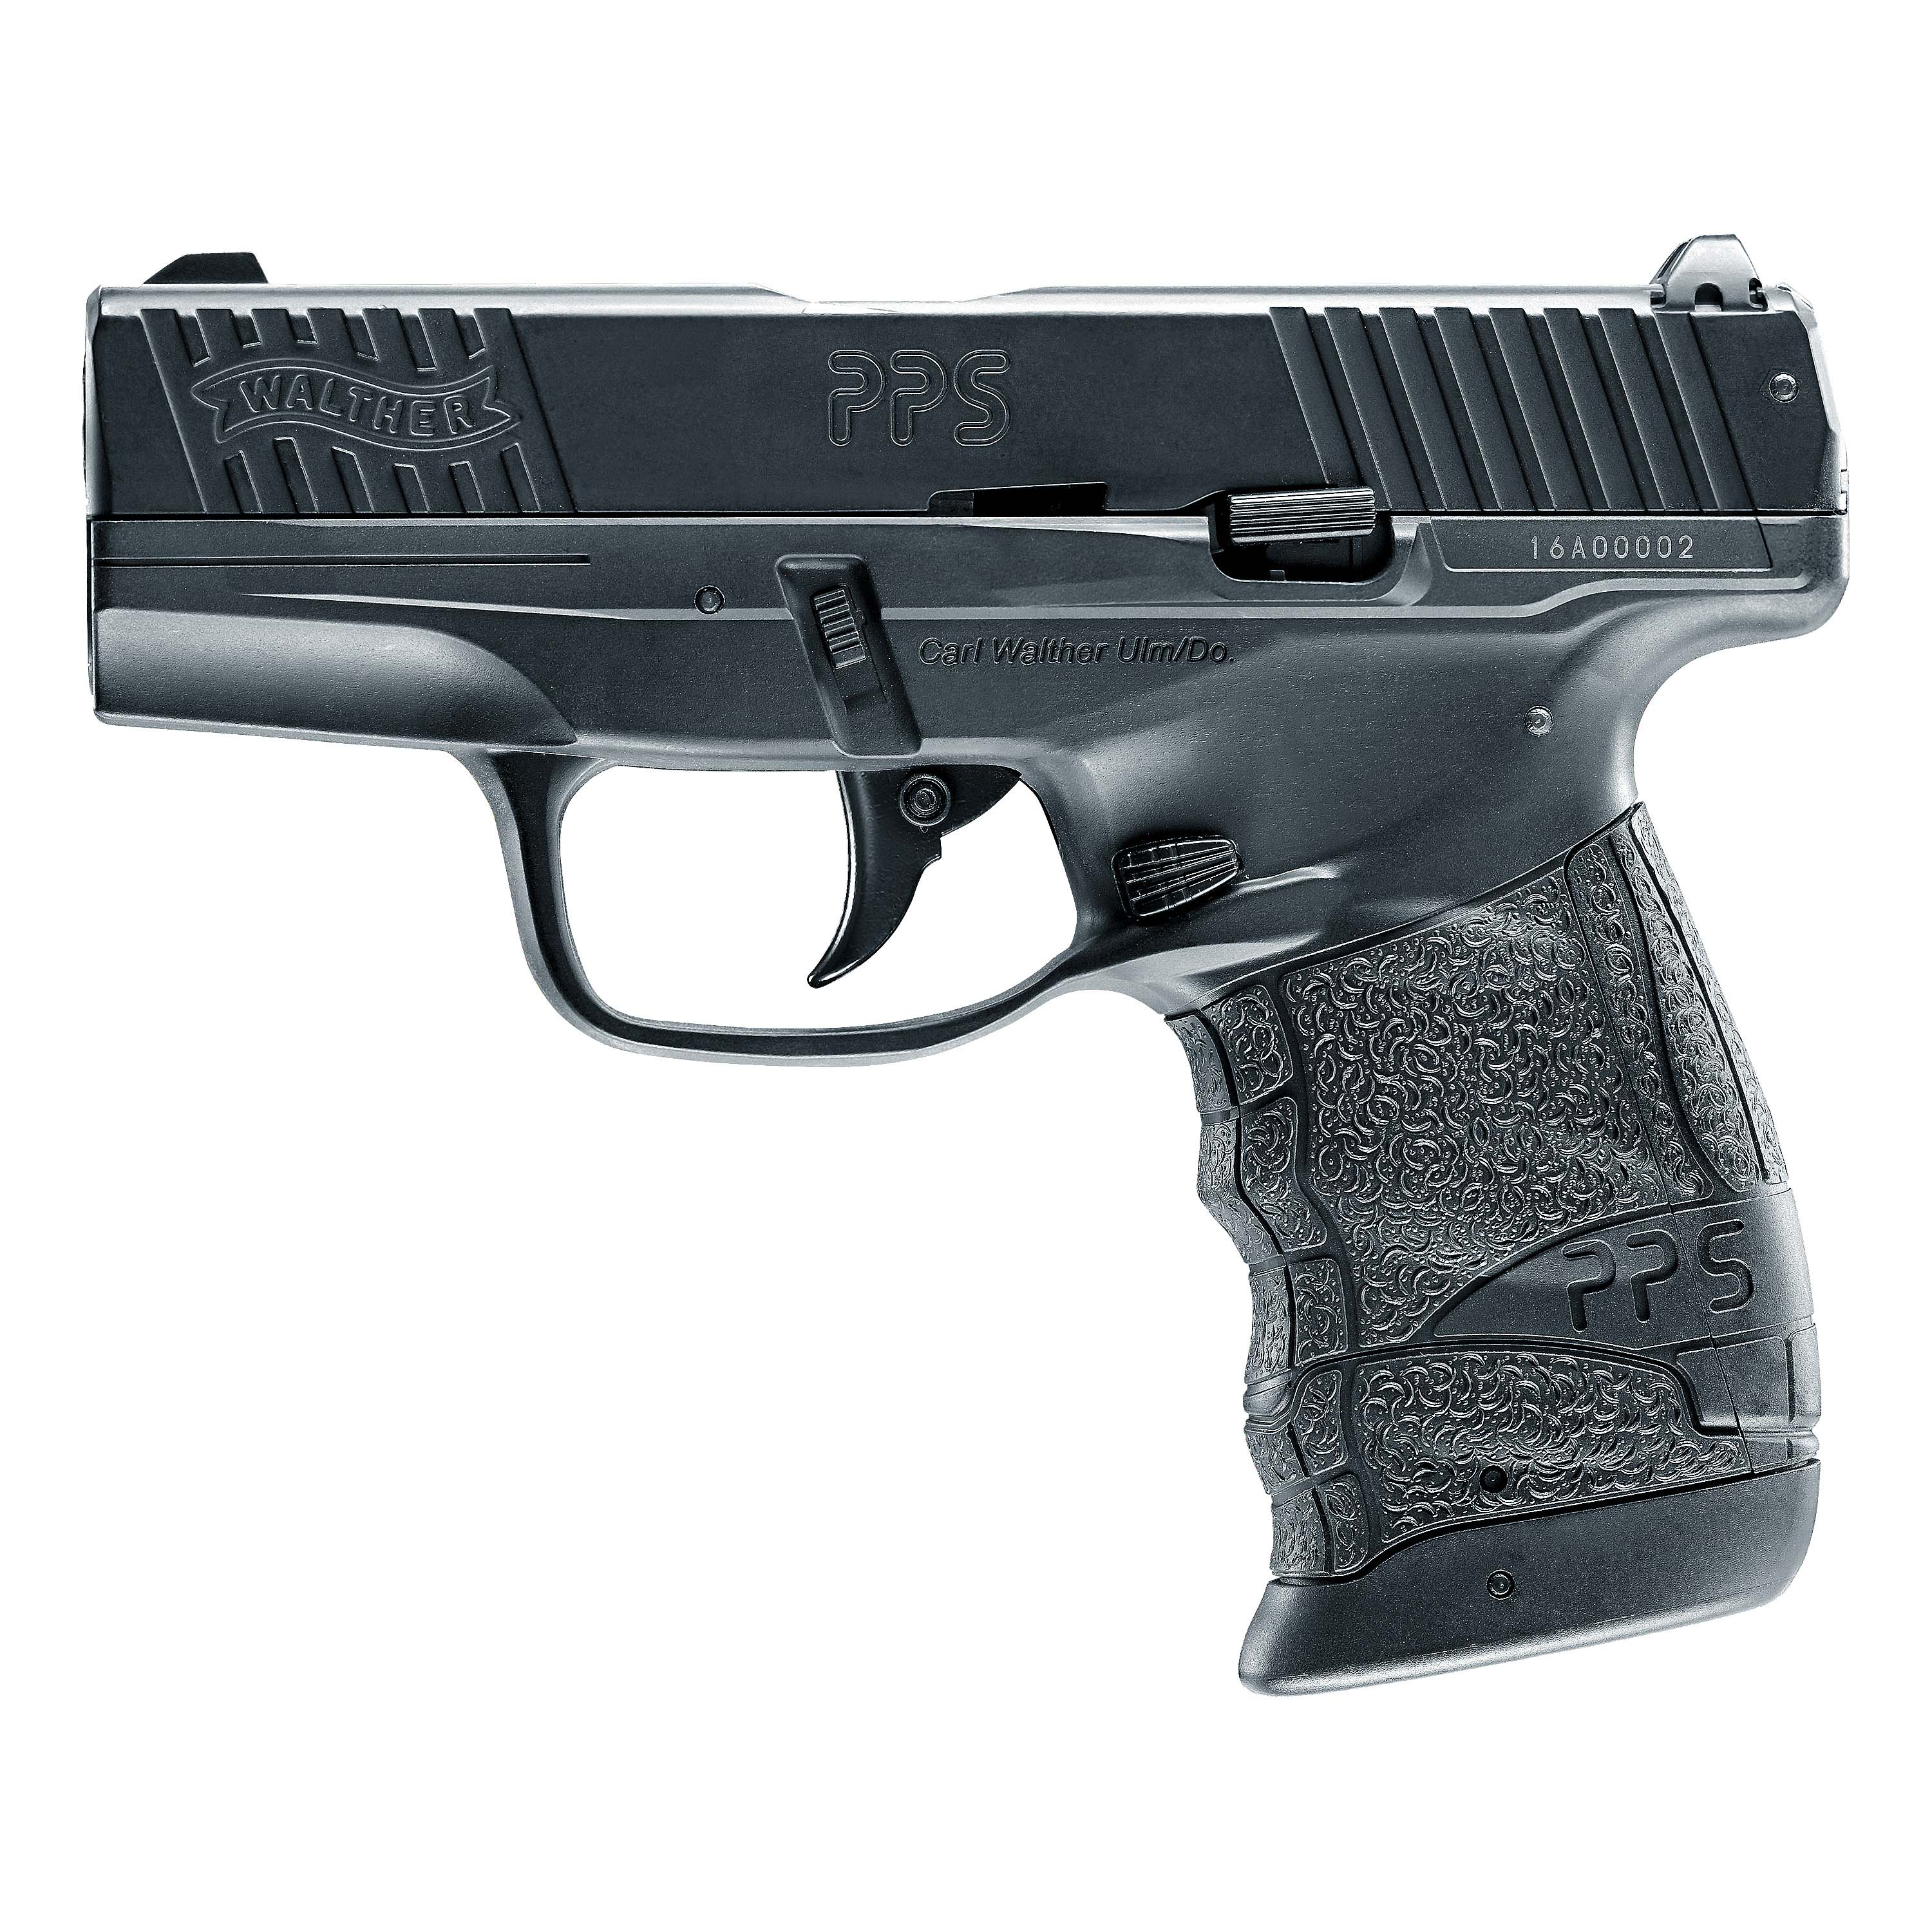 Walther Co2 Pistol PPS M2 4.5 mm